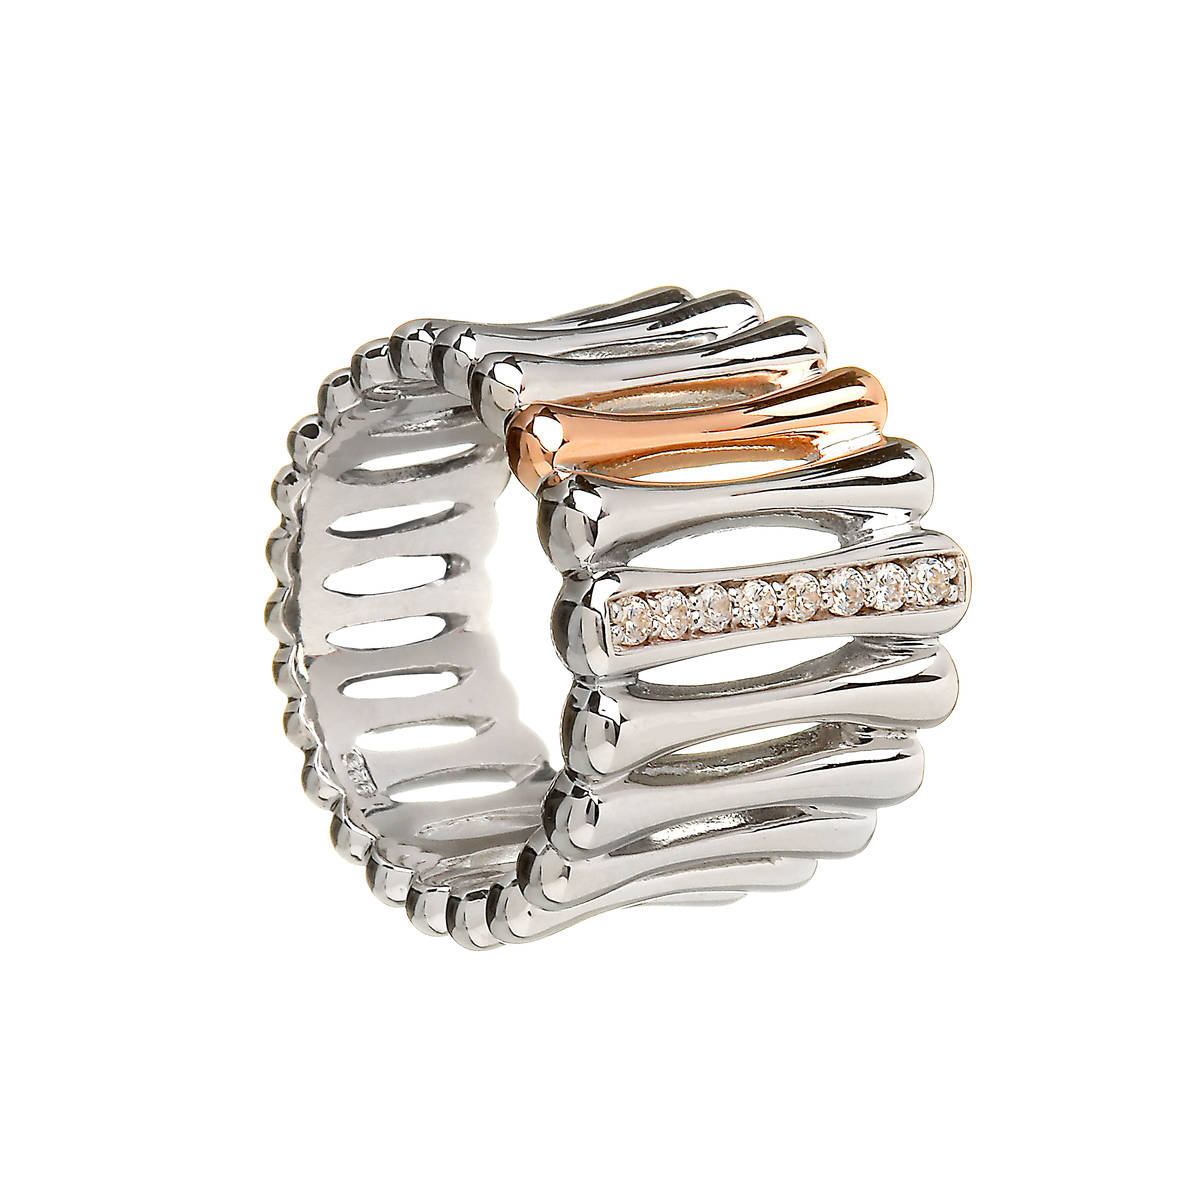 House of Lor silver/rose gold CZ set ring in a multiple bar design with 1 bar made from rare Irish gold.aick/dipck